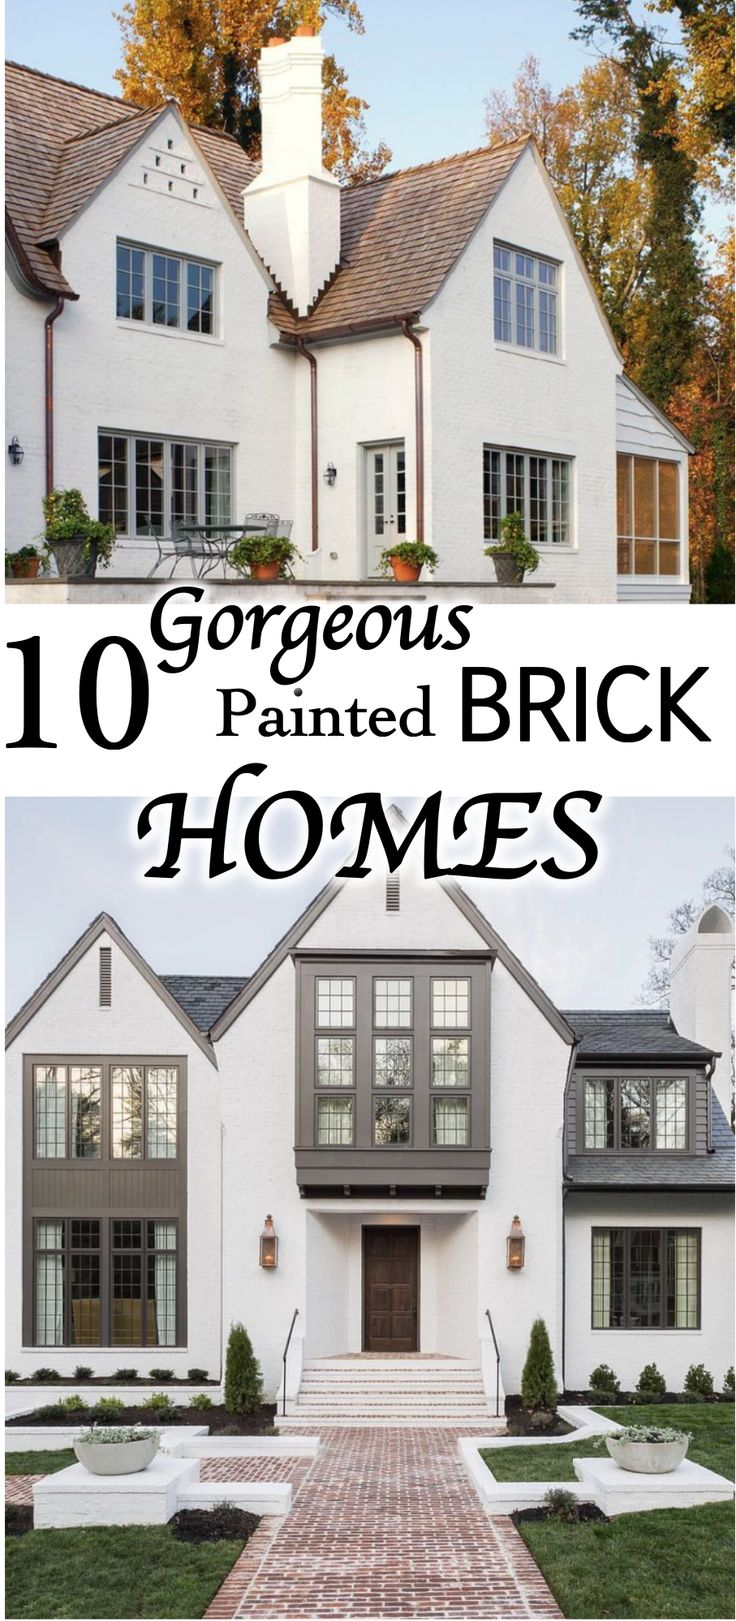 421 best HOME EXTERIOR INSPIRATION images on Pinterest | Ad home ...